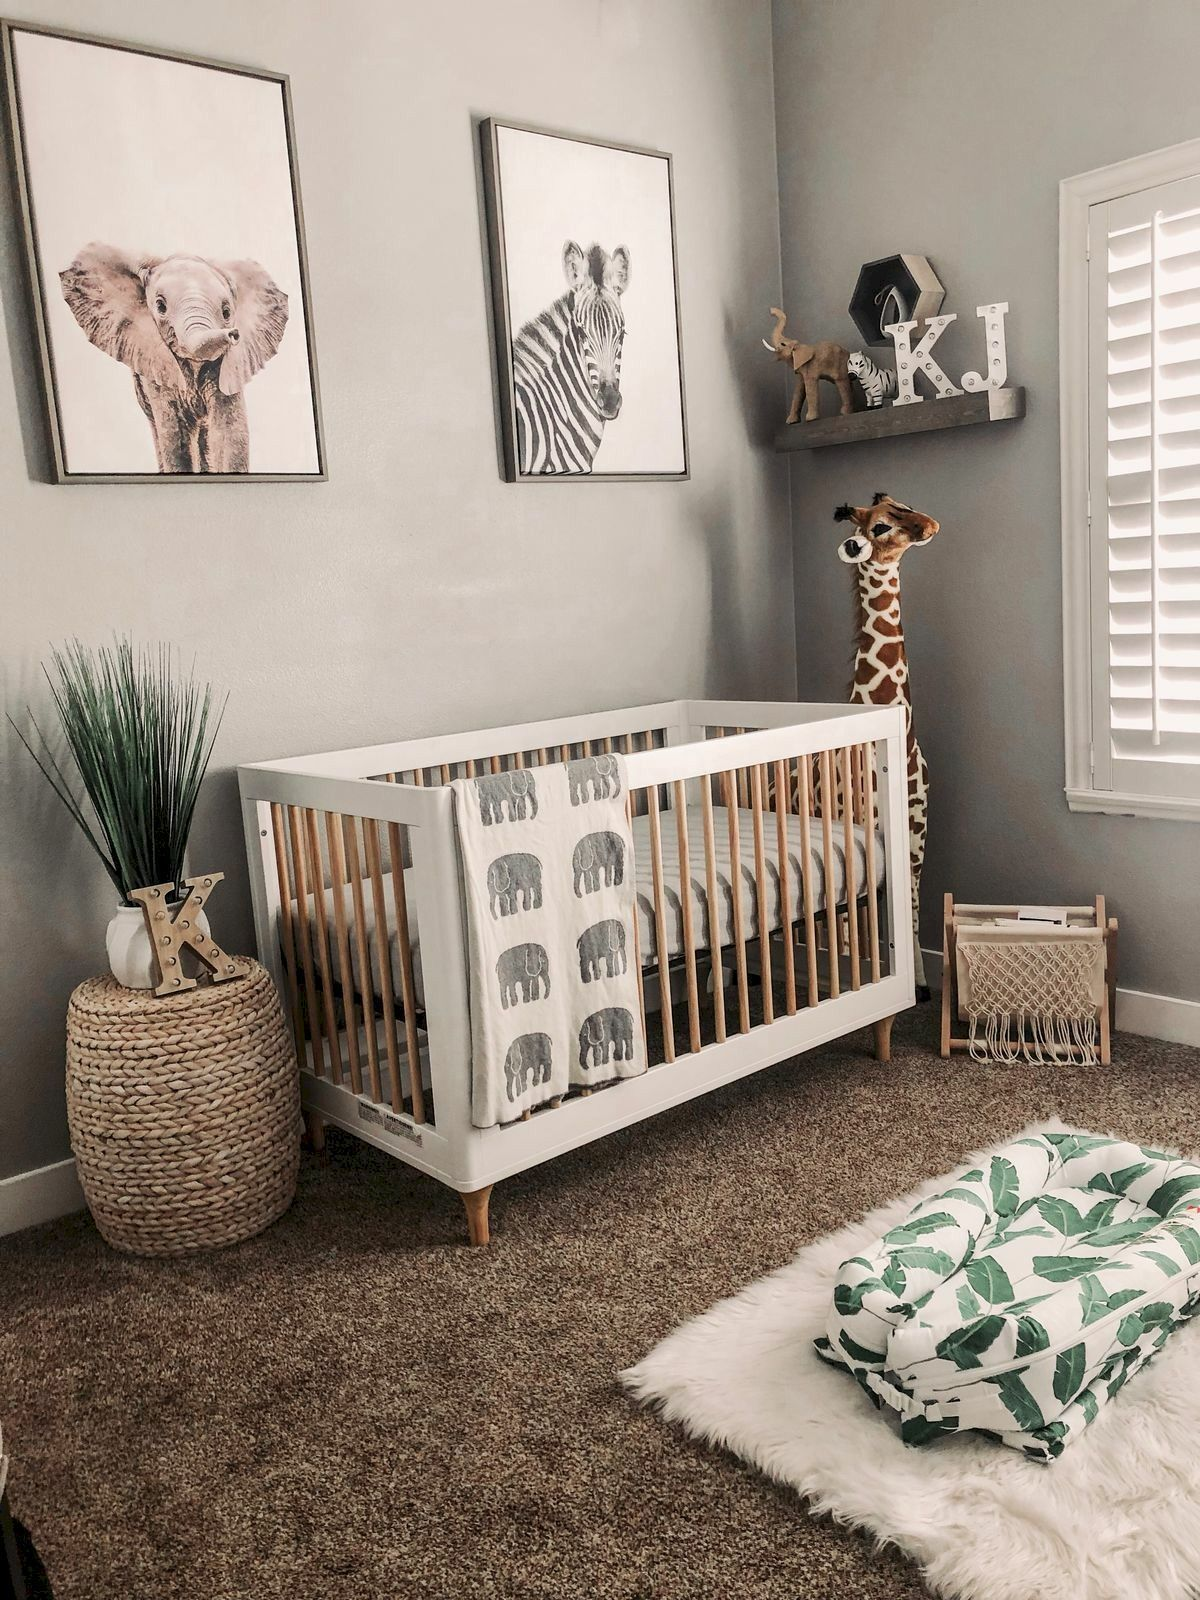 50 Cute Nursery Ideas For Baby Boy Babyboyblankets Your Baby Boy Deserves To Be Spoiled With A Mag Baby Boy Room Decor Nursery Baby Room Baby Boy Room Nursery